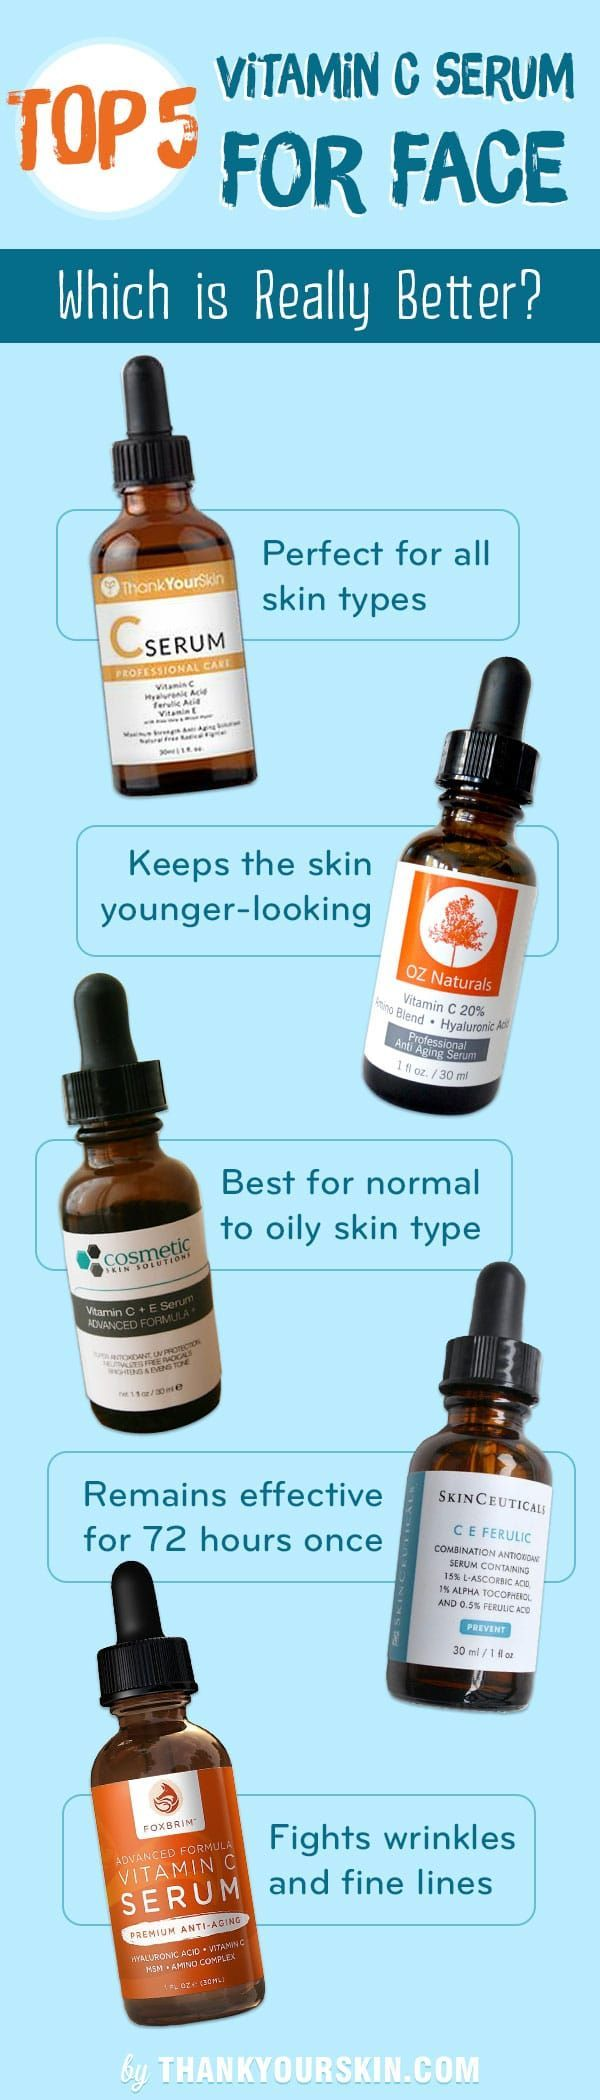 The 5 Best Vitamin C Serum For Face Reviews: Which Is Really Better? Best Drugstore Vitamin C Serum for All skin type https://www.thankyourskin.com/best-vitamin-c-serum-for-face-reviews/